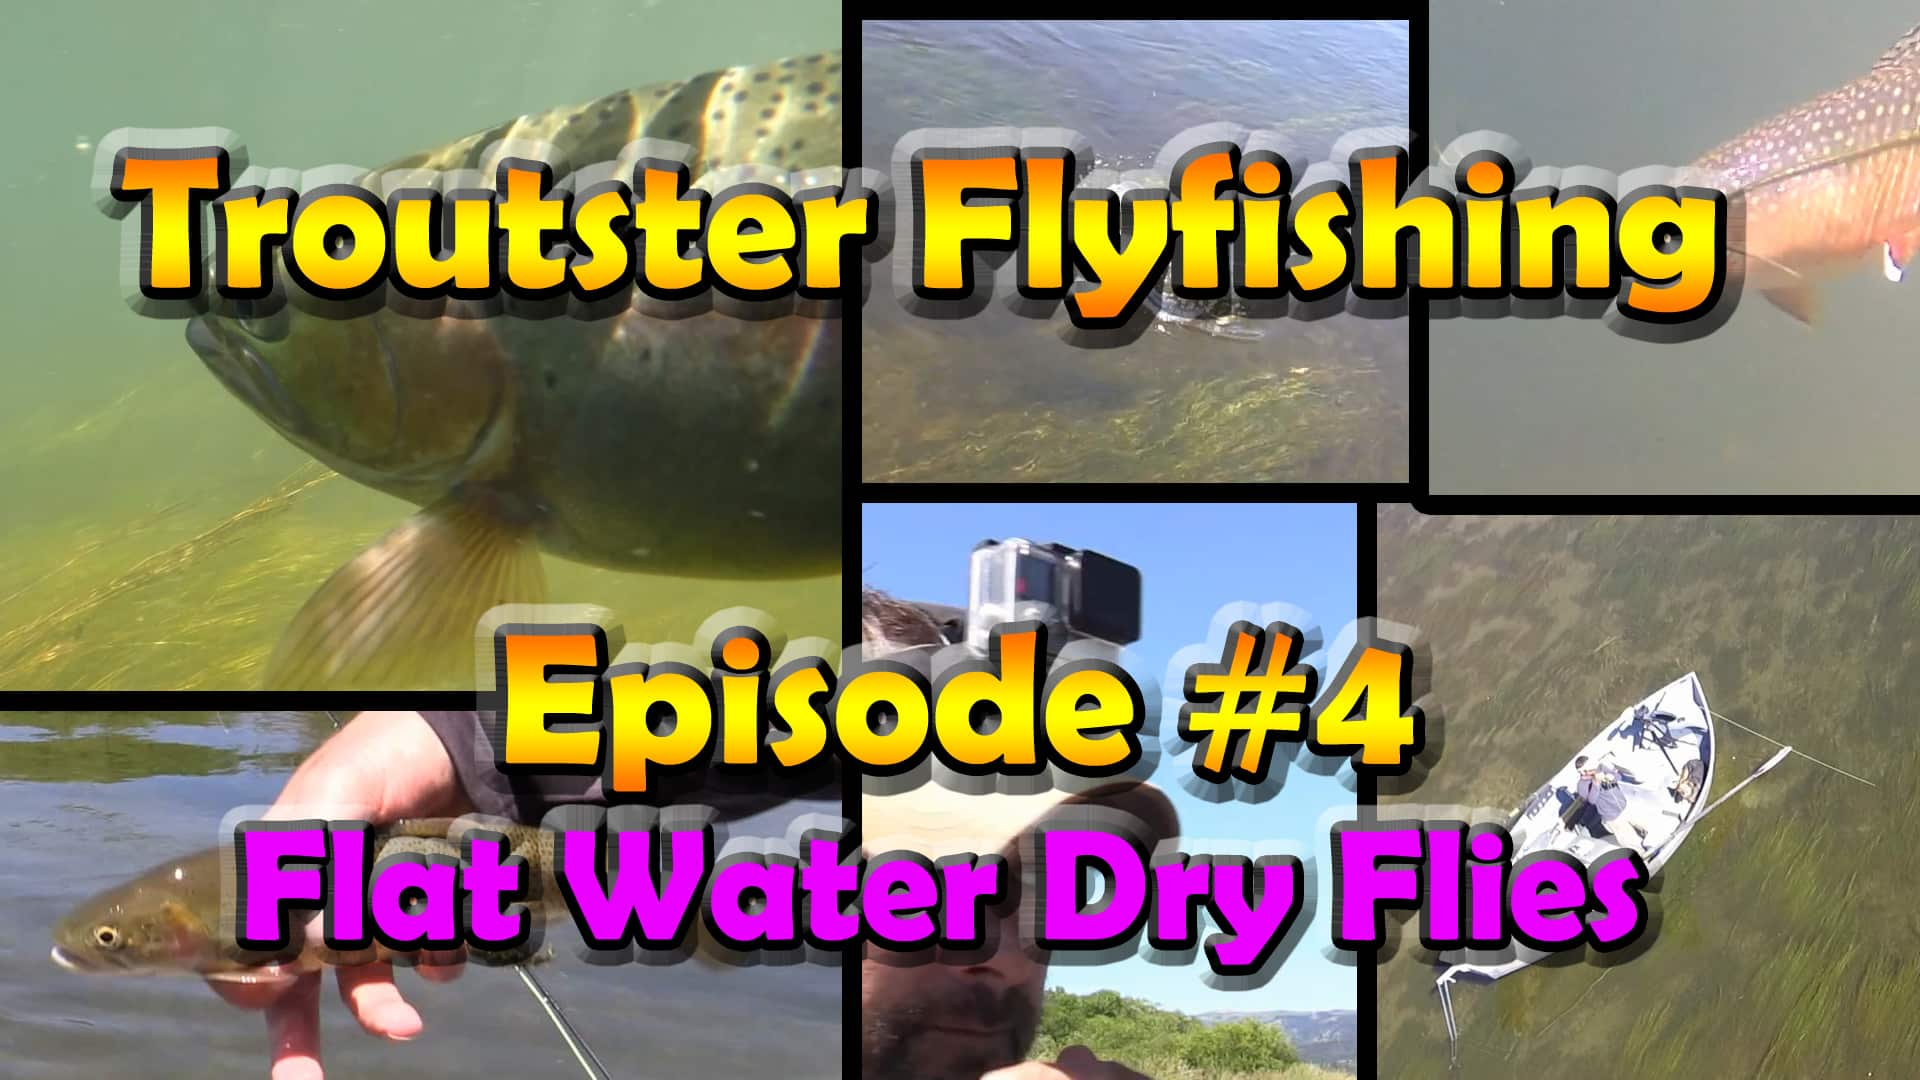 Troutster fly fishing for trout episode 4